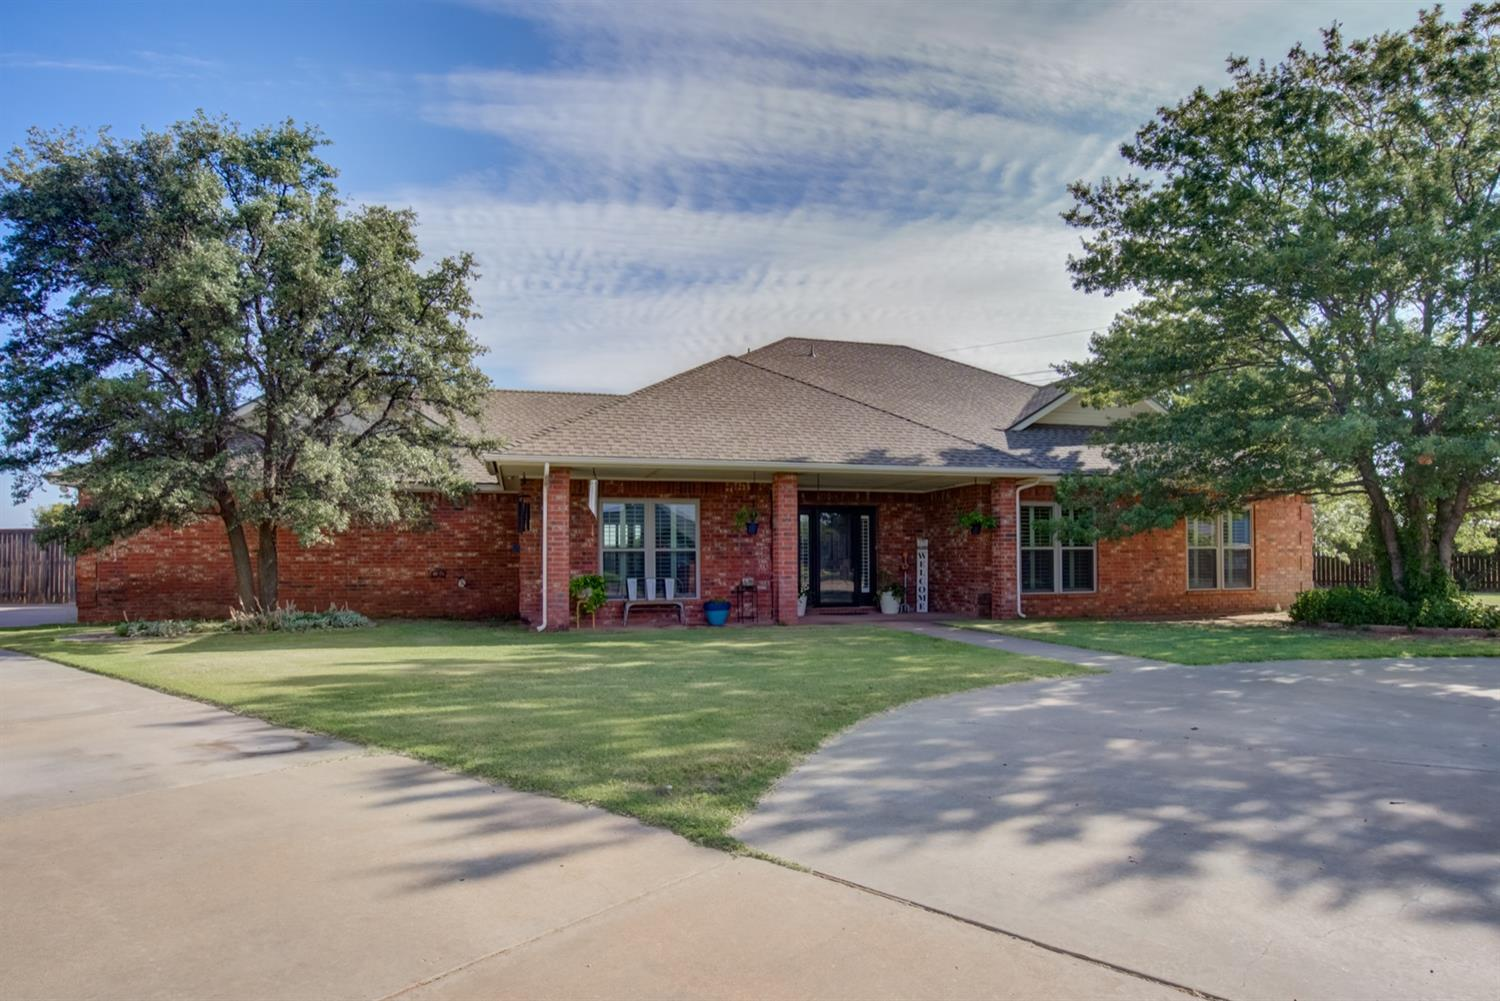 6302 County Road 7405, Lubbock in Lubbock County, TX 79424 Home for Sale